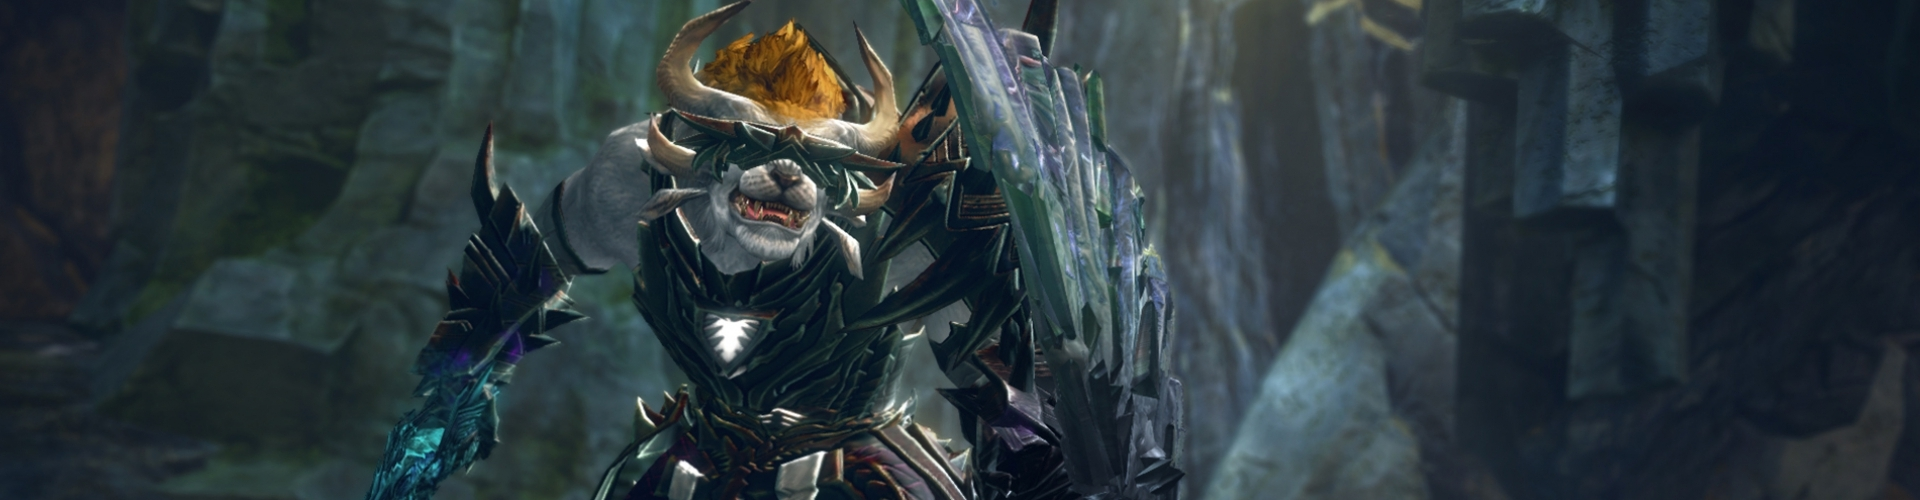 Guild Wars 2: Release Heart of Thorns